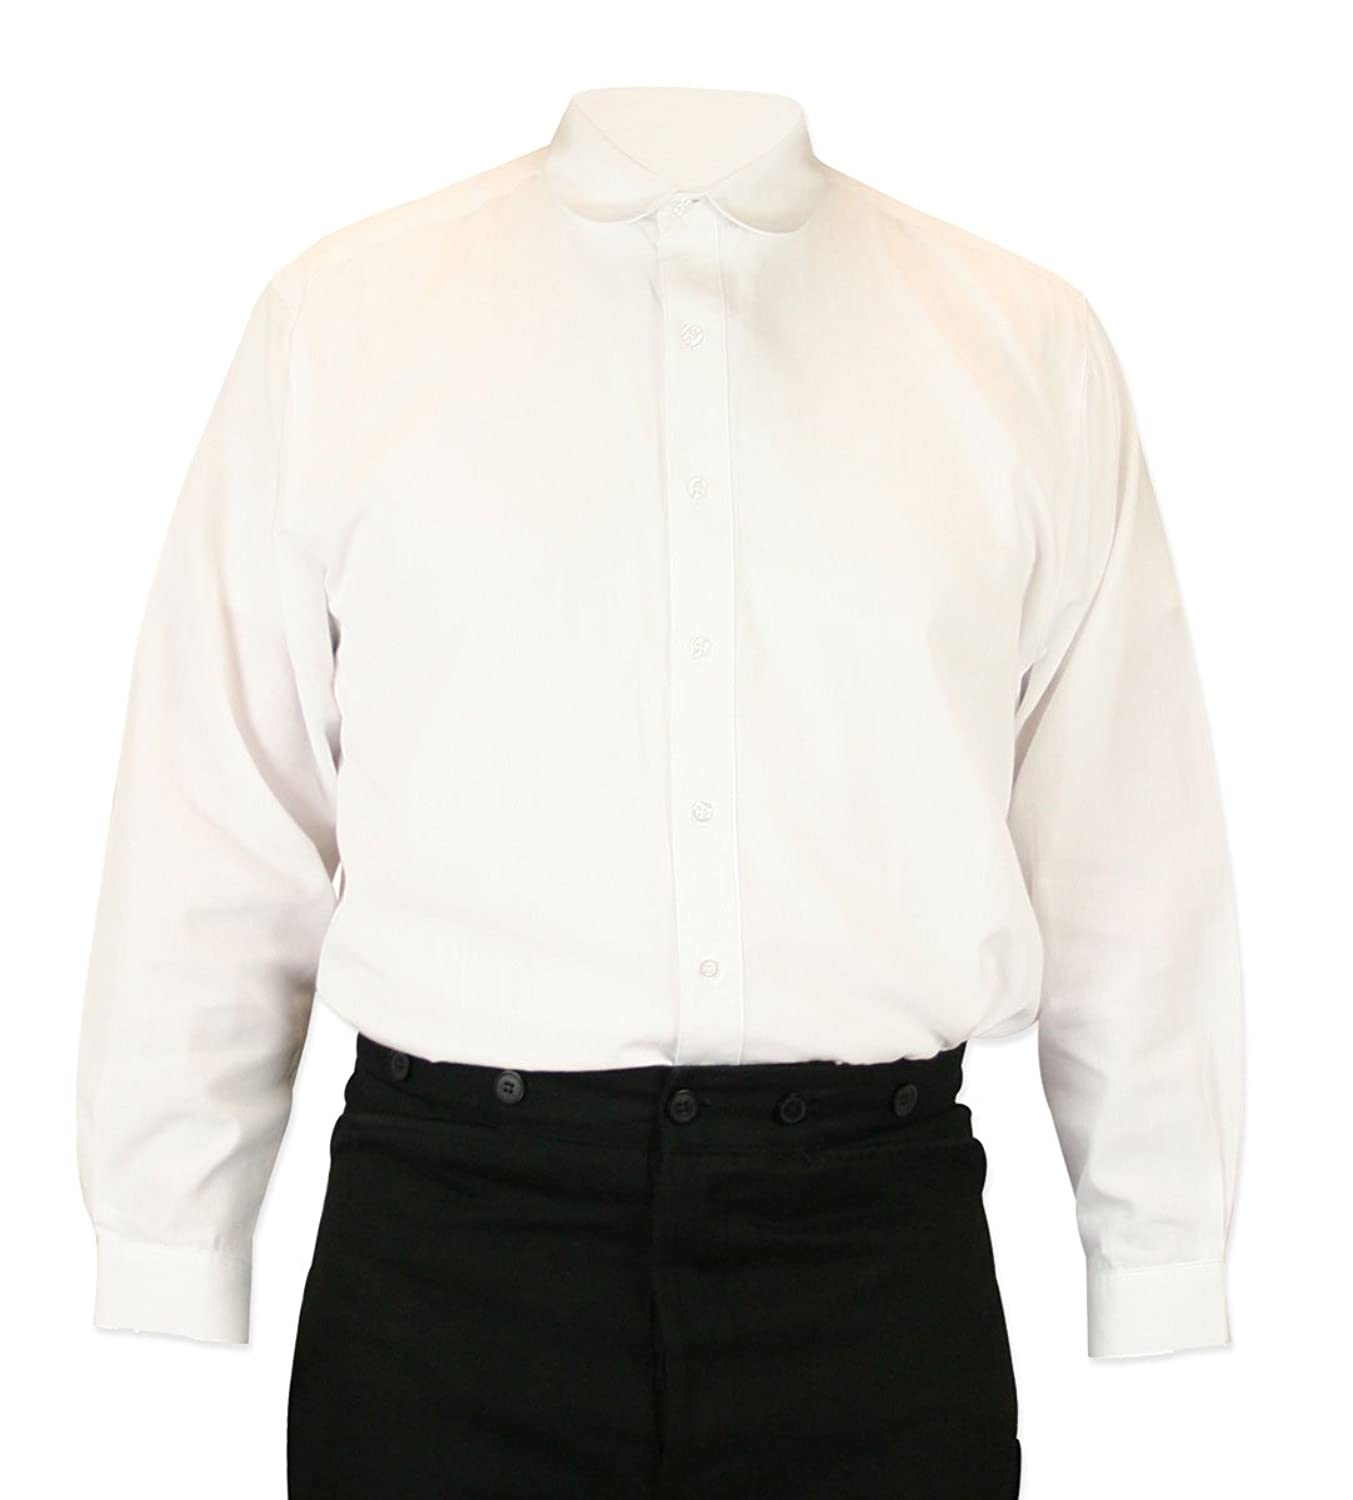 1920s Men's Dress Shirts, Casual Shirts Virgil Club Collar Dress Shirt $59.95 AT vintagedancer.com